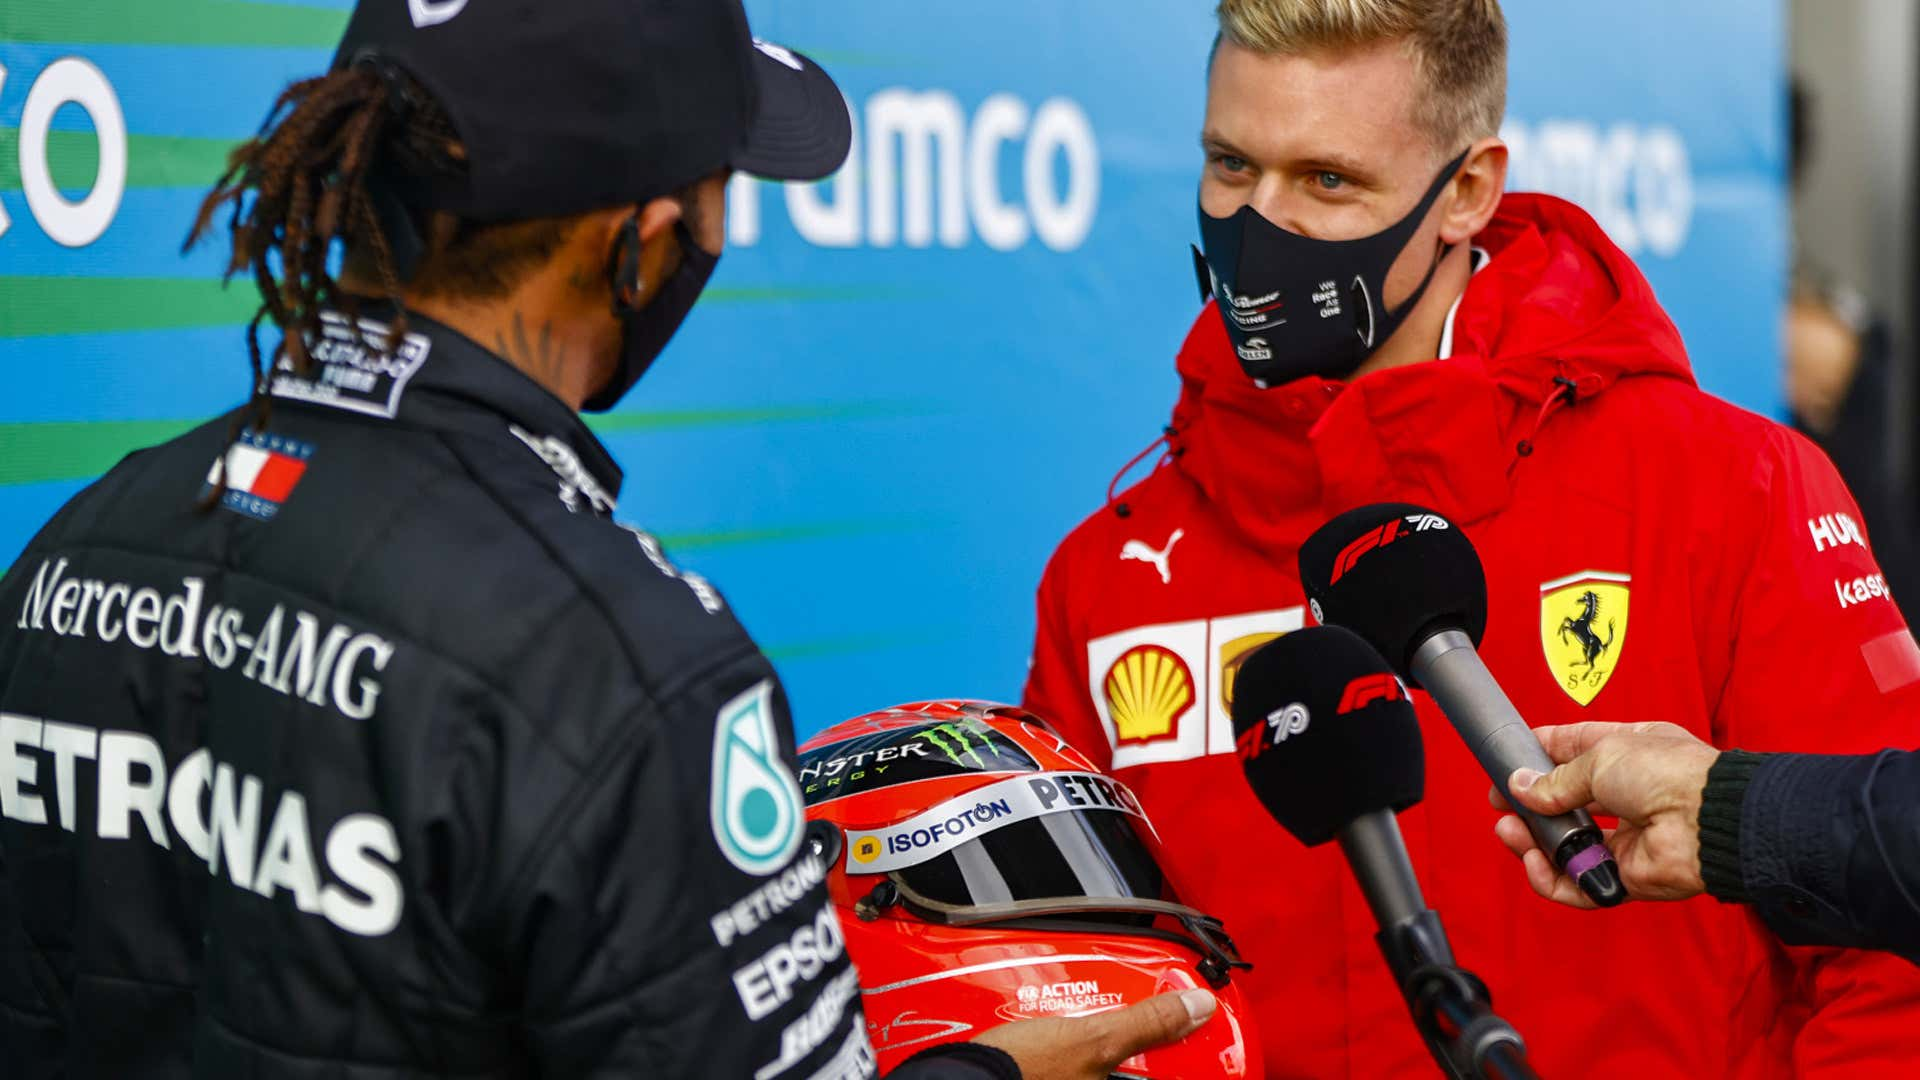 Lewis Hamilton Presented With Schumacher S Helmet After Tying His F1 Win Record